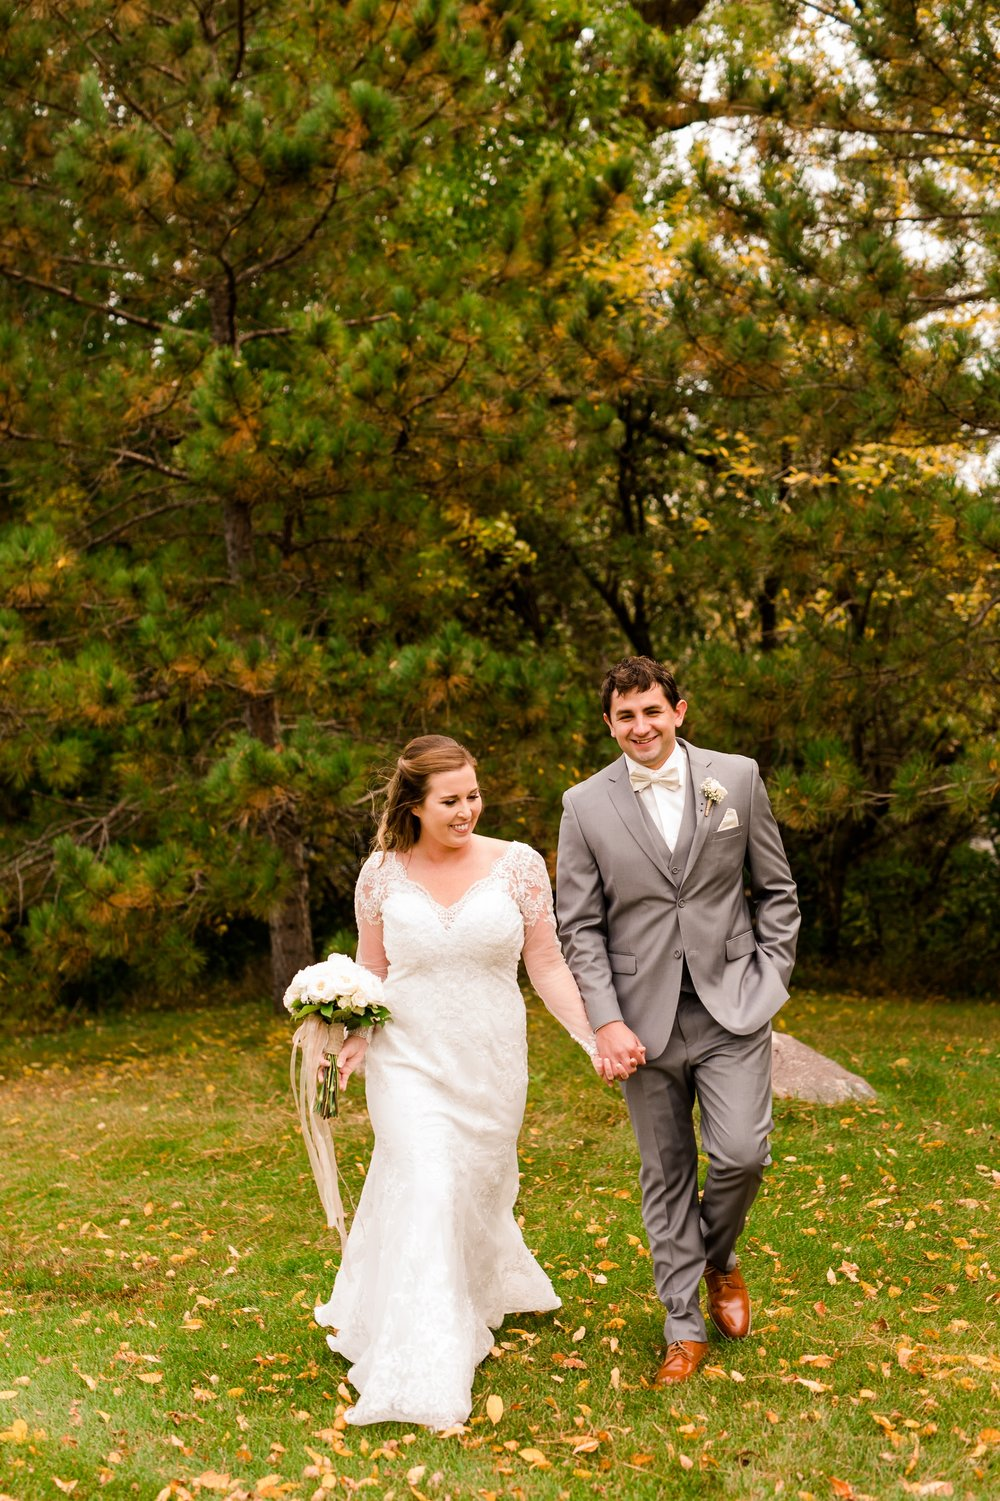 AmberLangerudPhotography_Fair Hills Resort Lakeside Wedding in Minnesota_3426.jpg